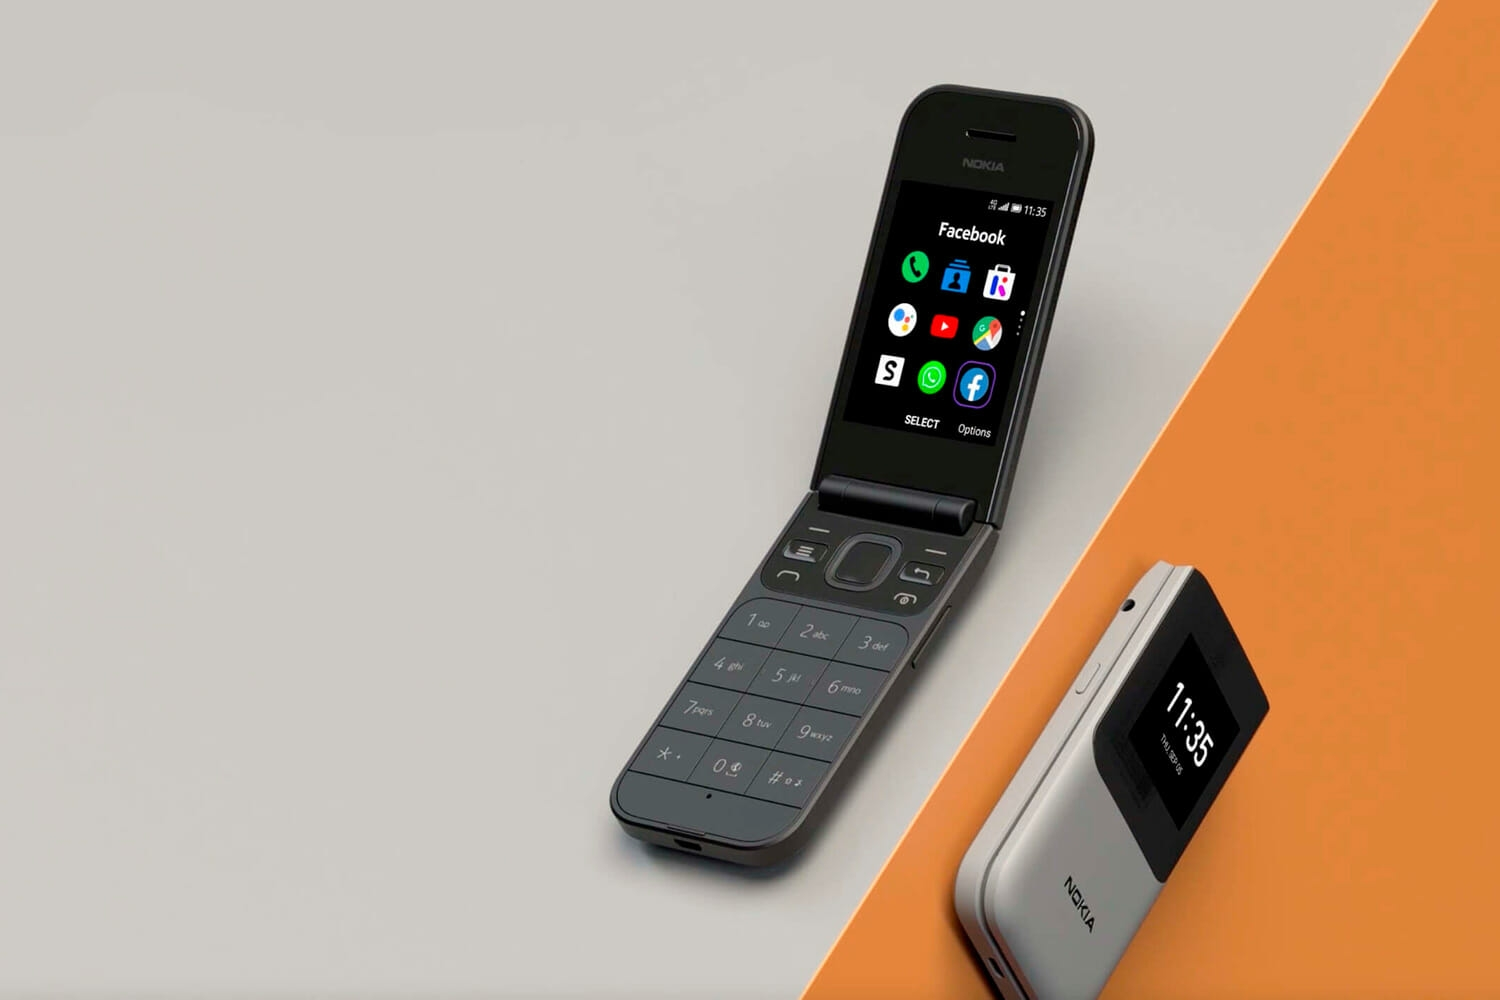 IFA low cost phones at $ 20 are presented at IFA 1